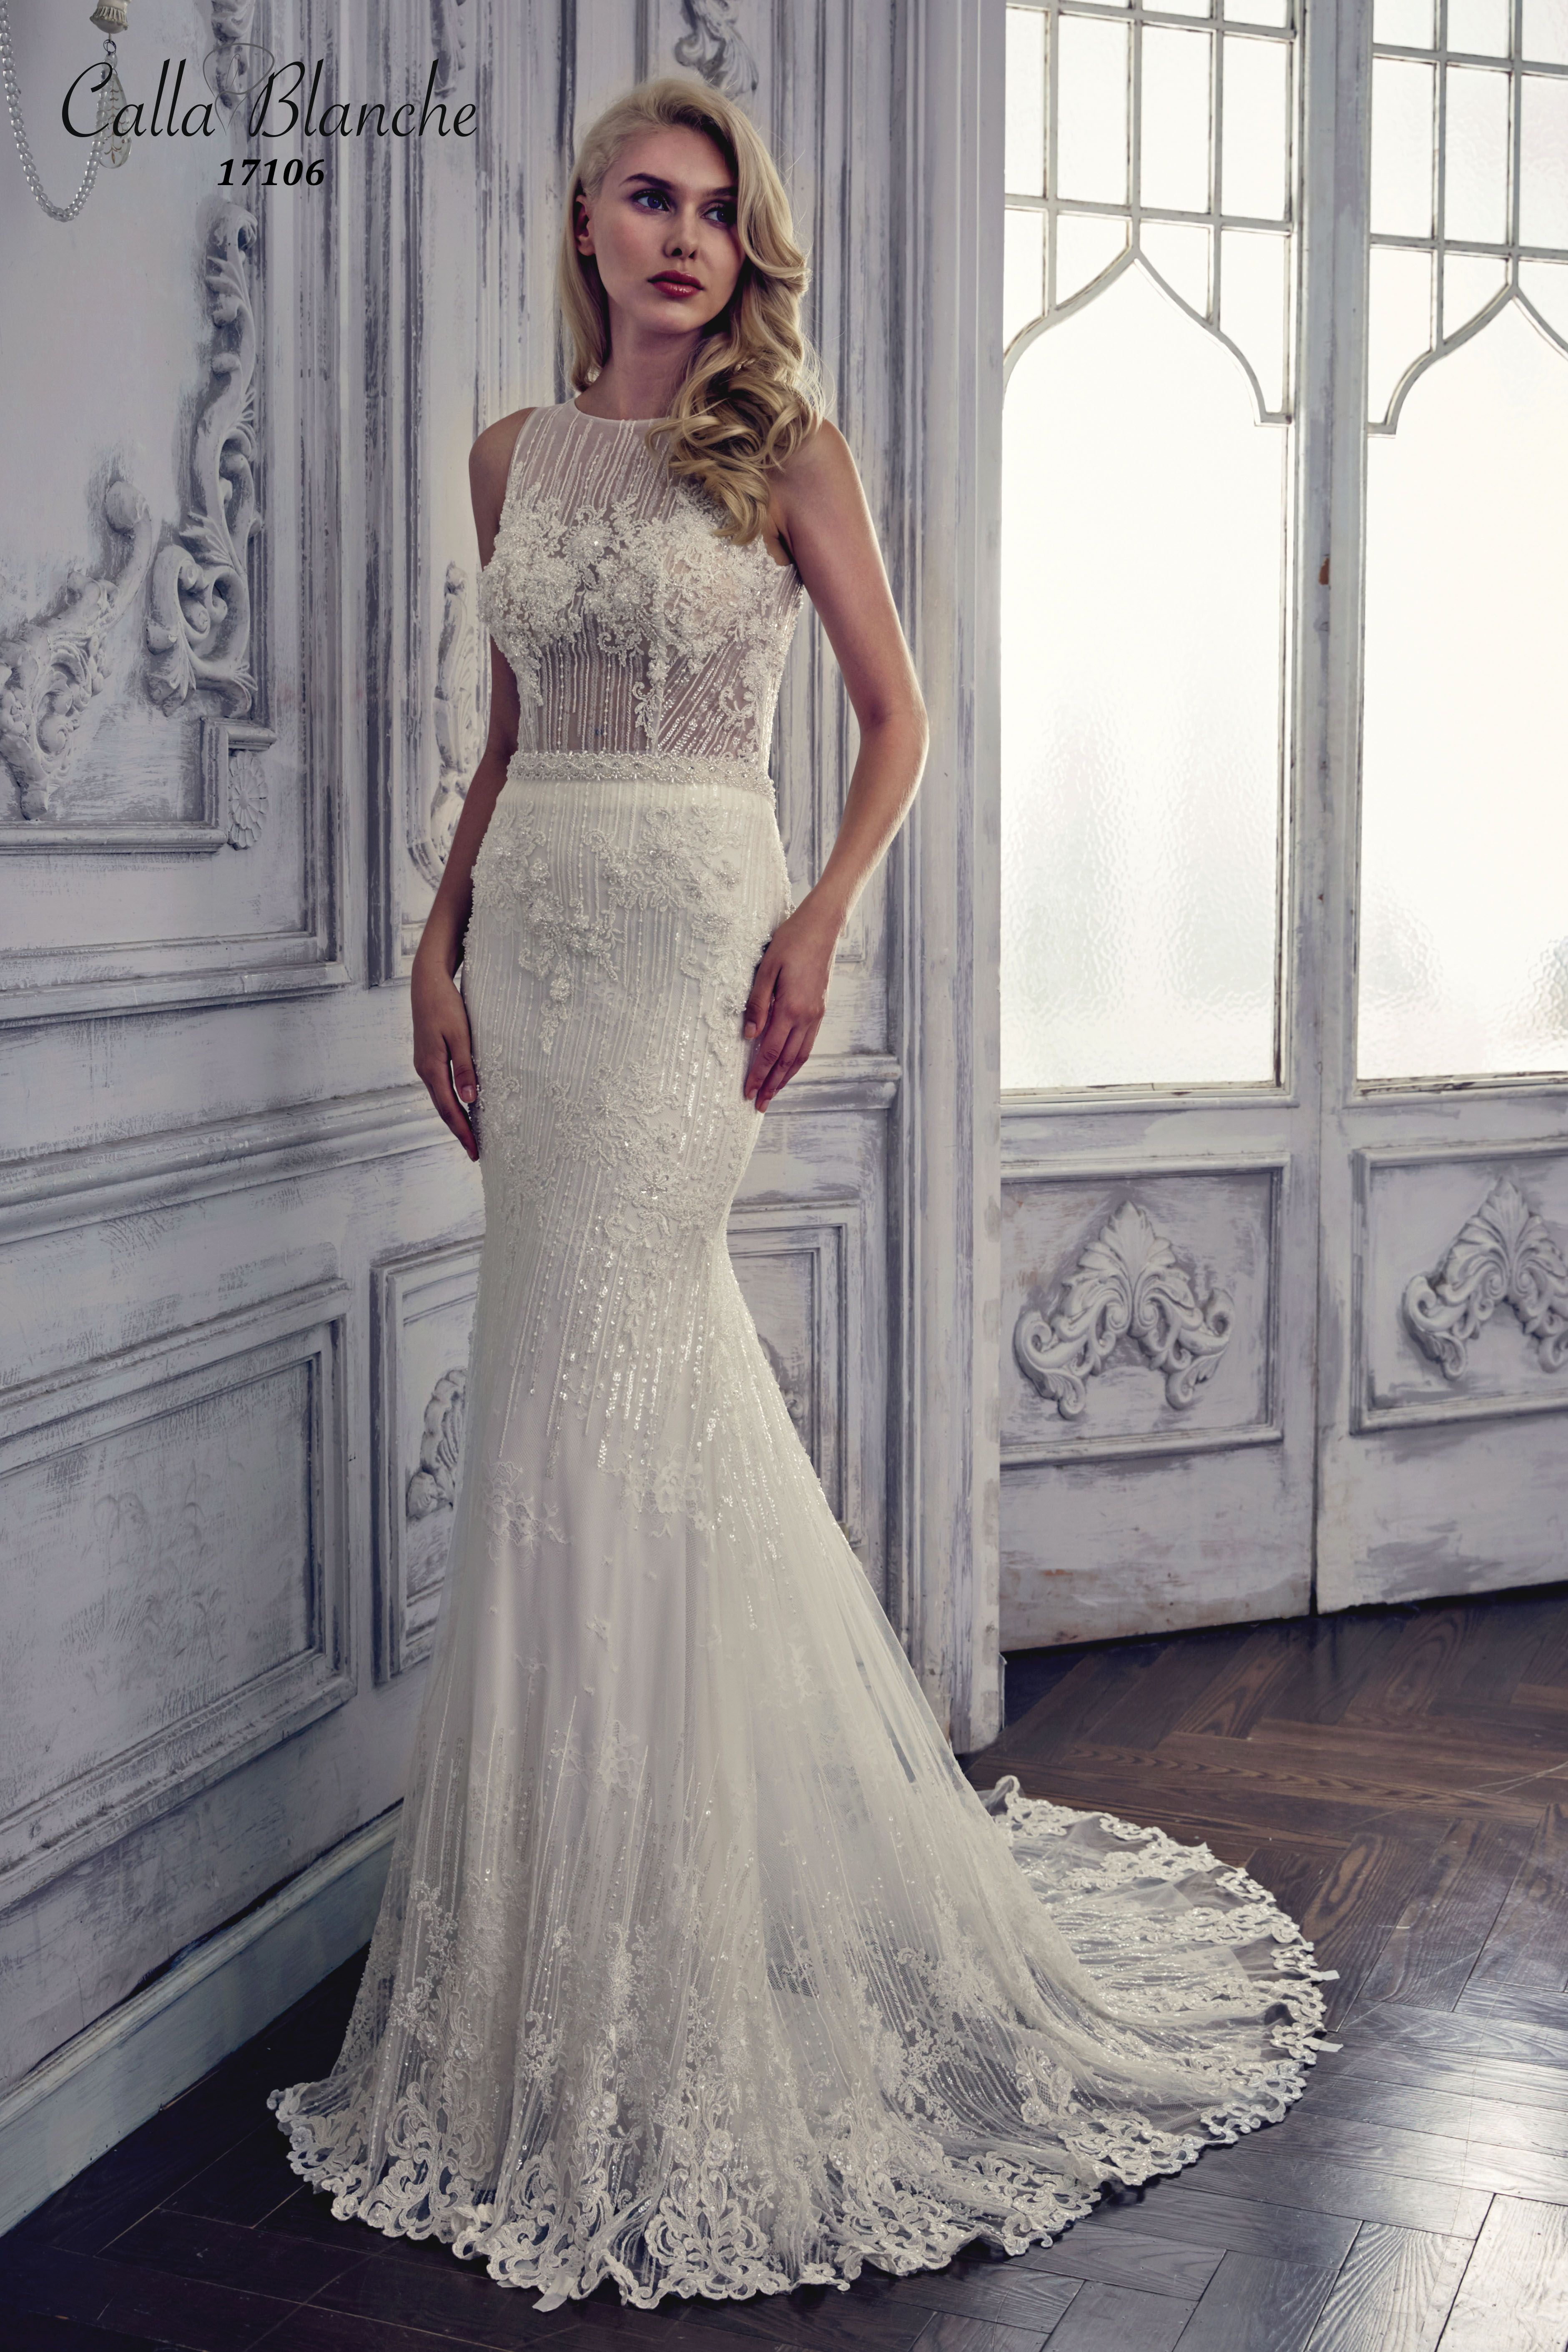 Calla Blanche Wedding Dress Gown Gemma Ivory Sheath Style With Beaded Lace Boat Neckline And Sleeveless For The Bride Boutique